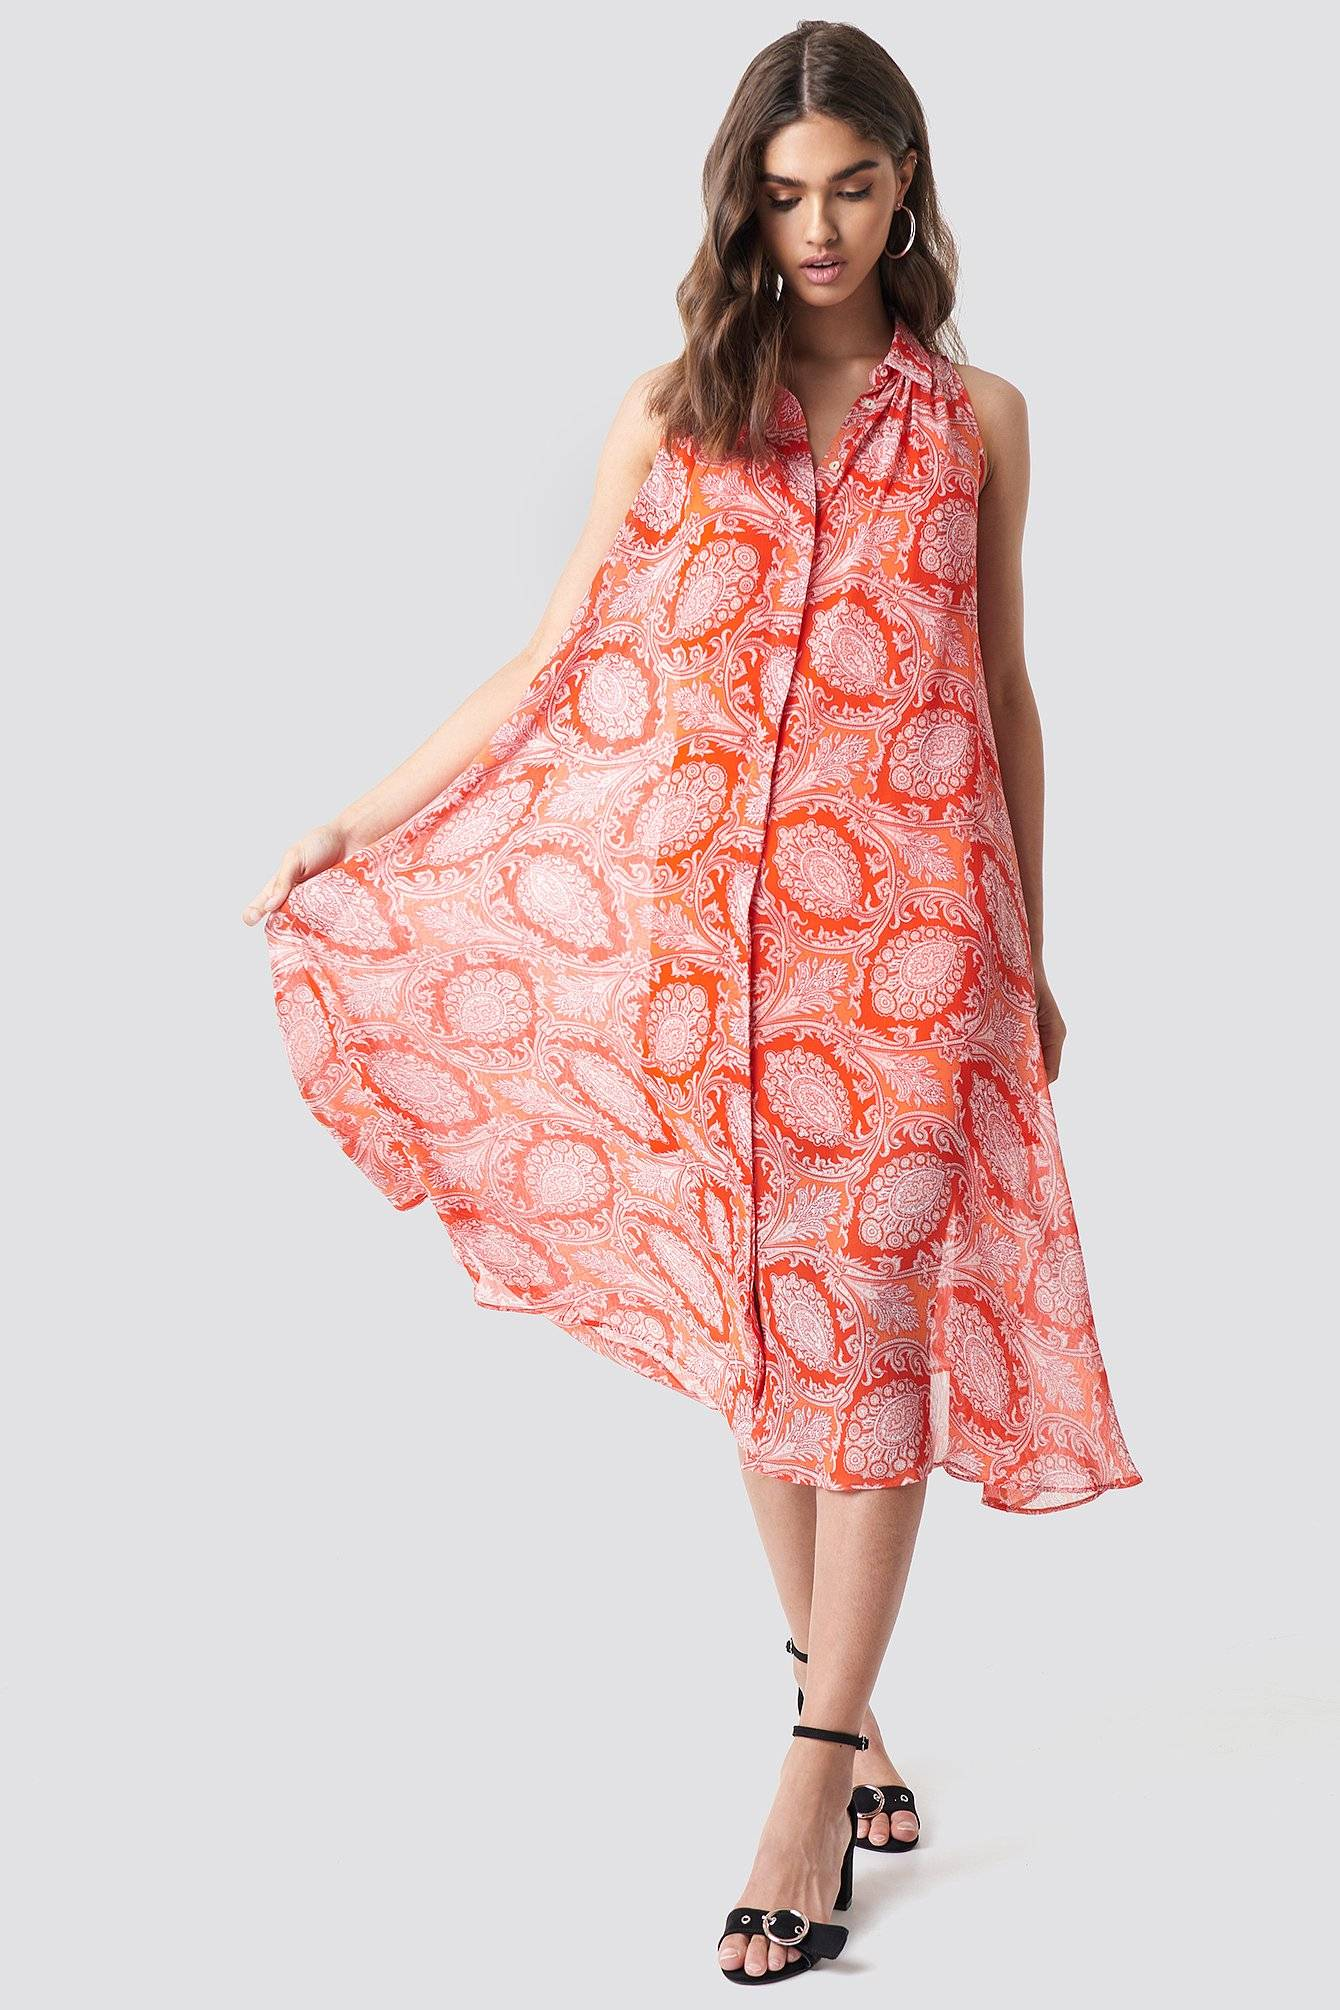 MANGO Bengala Dress - Orange